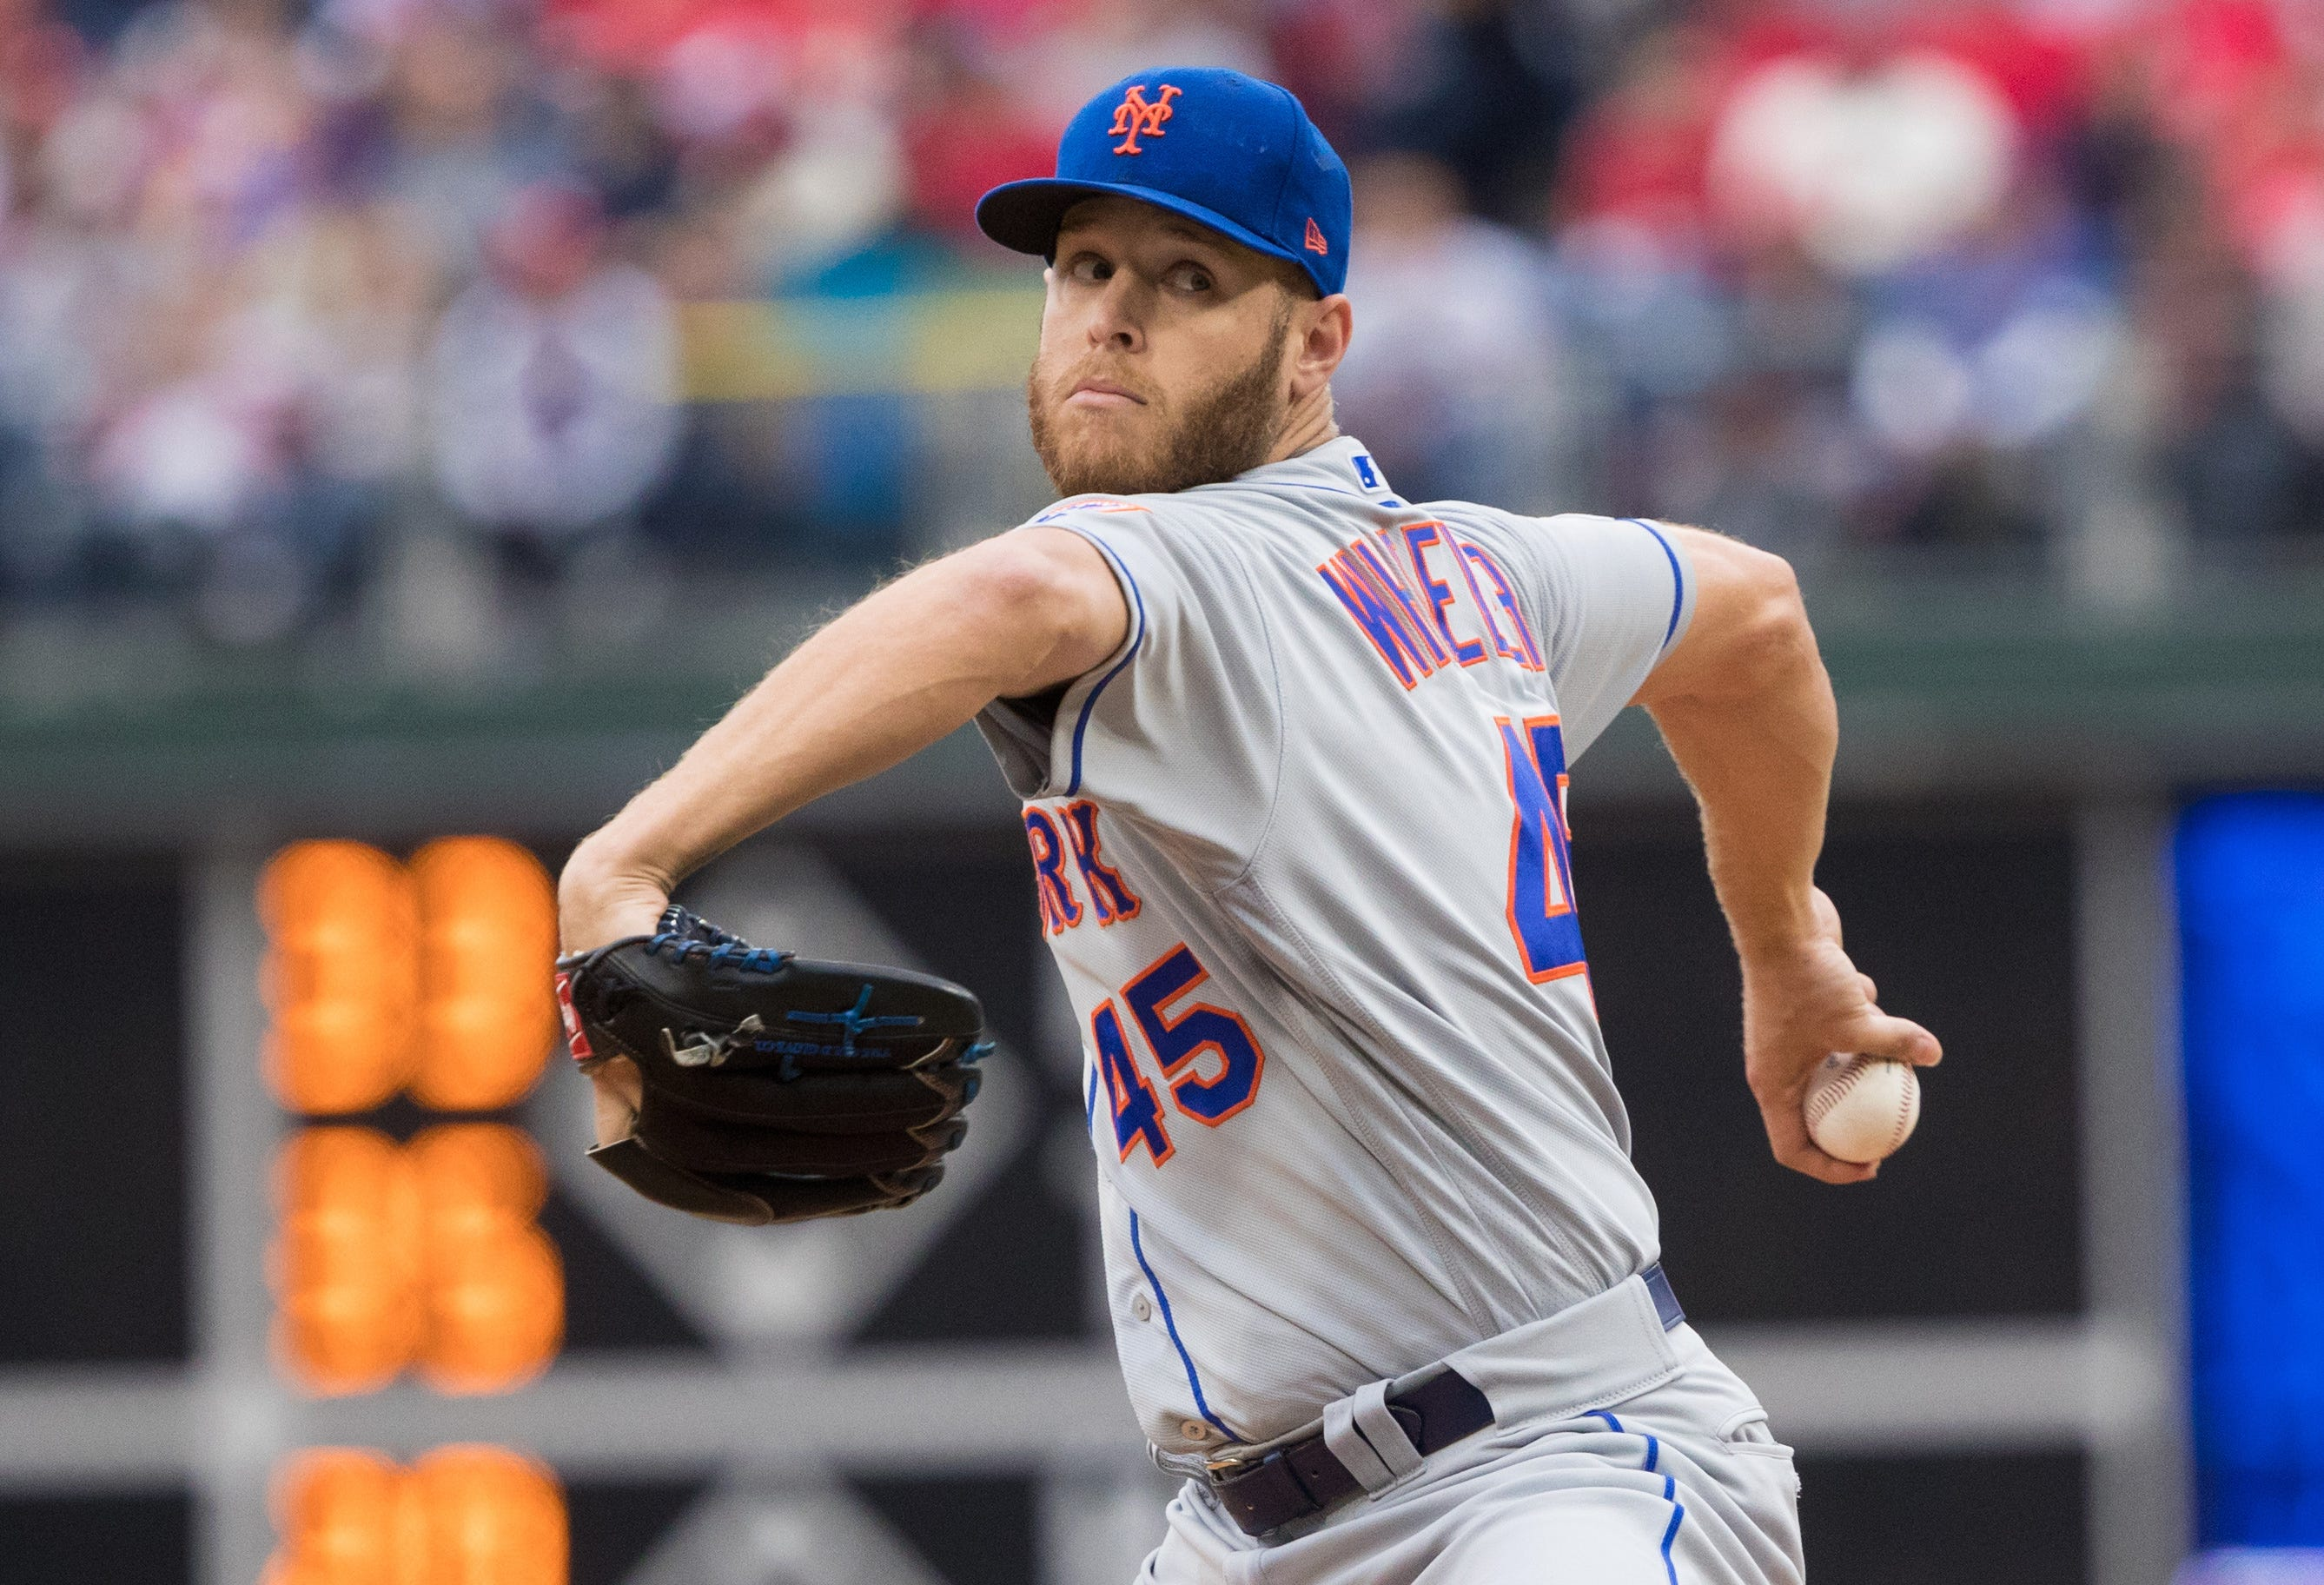 Phillies agree to five-year, $118 million deal with free agent starter Zack Wheeler